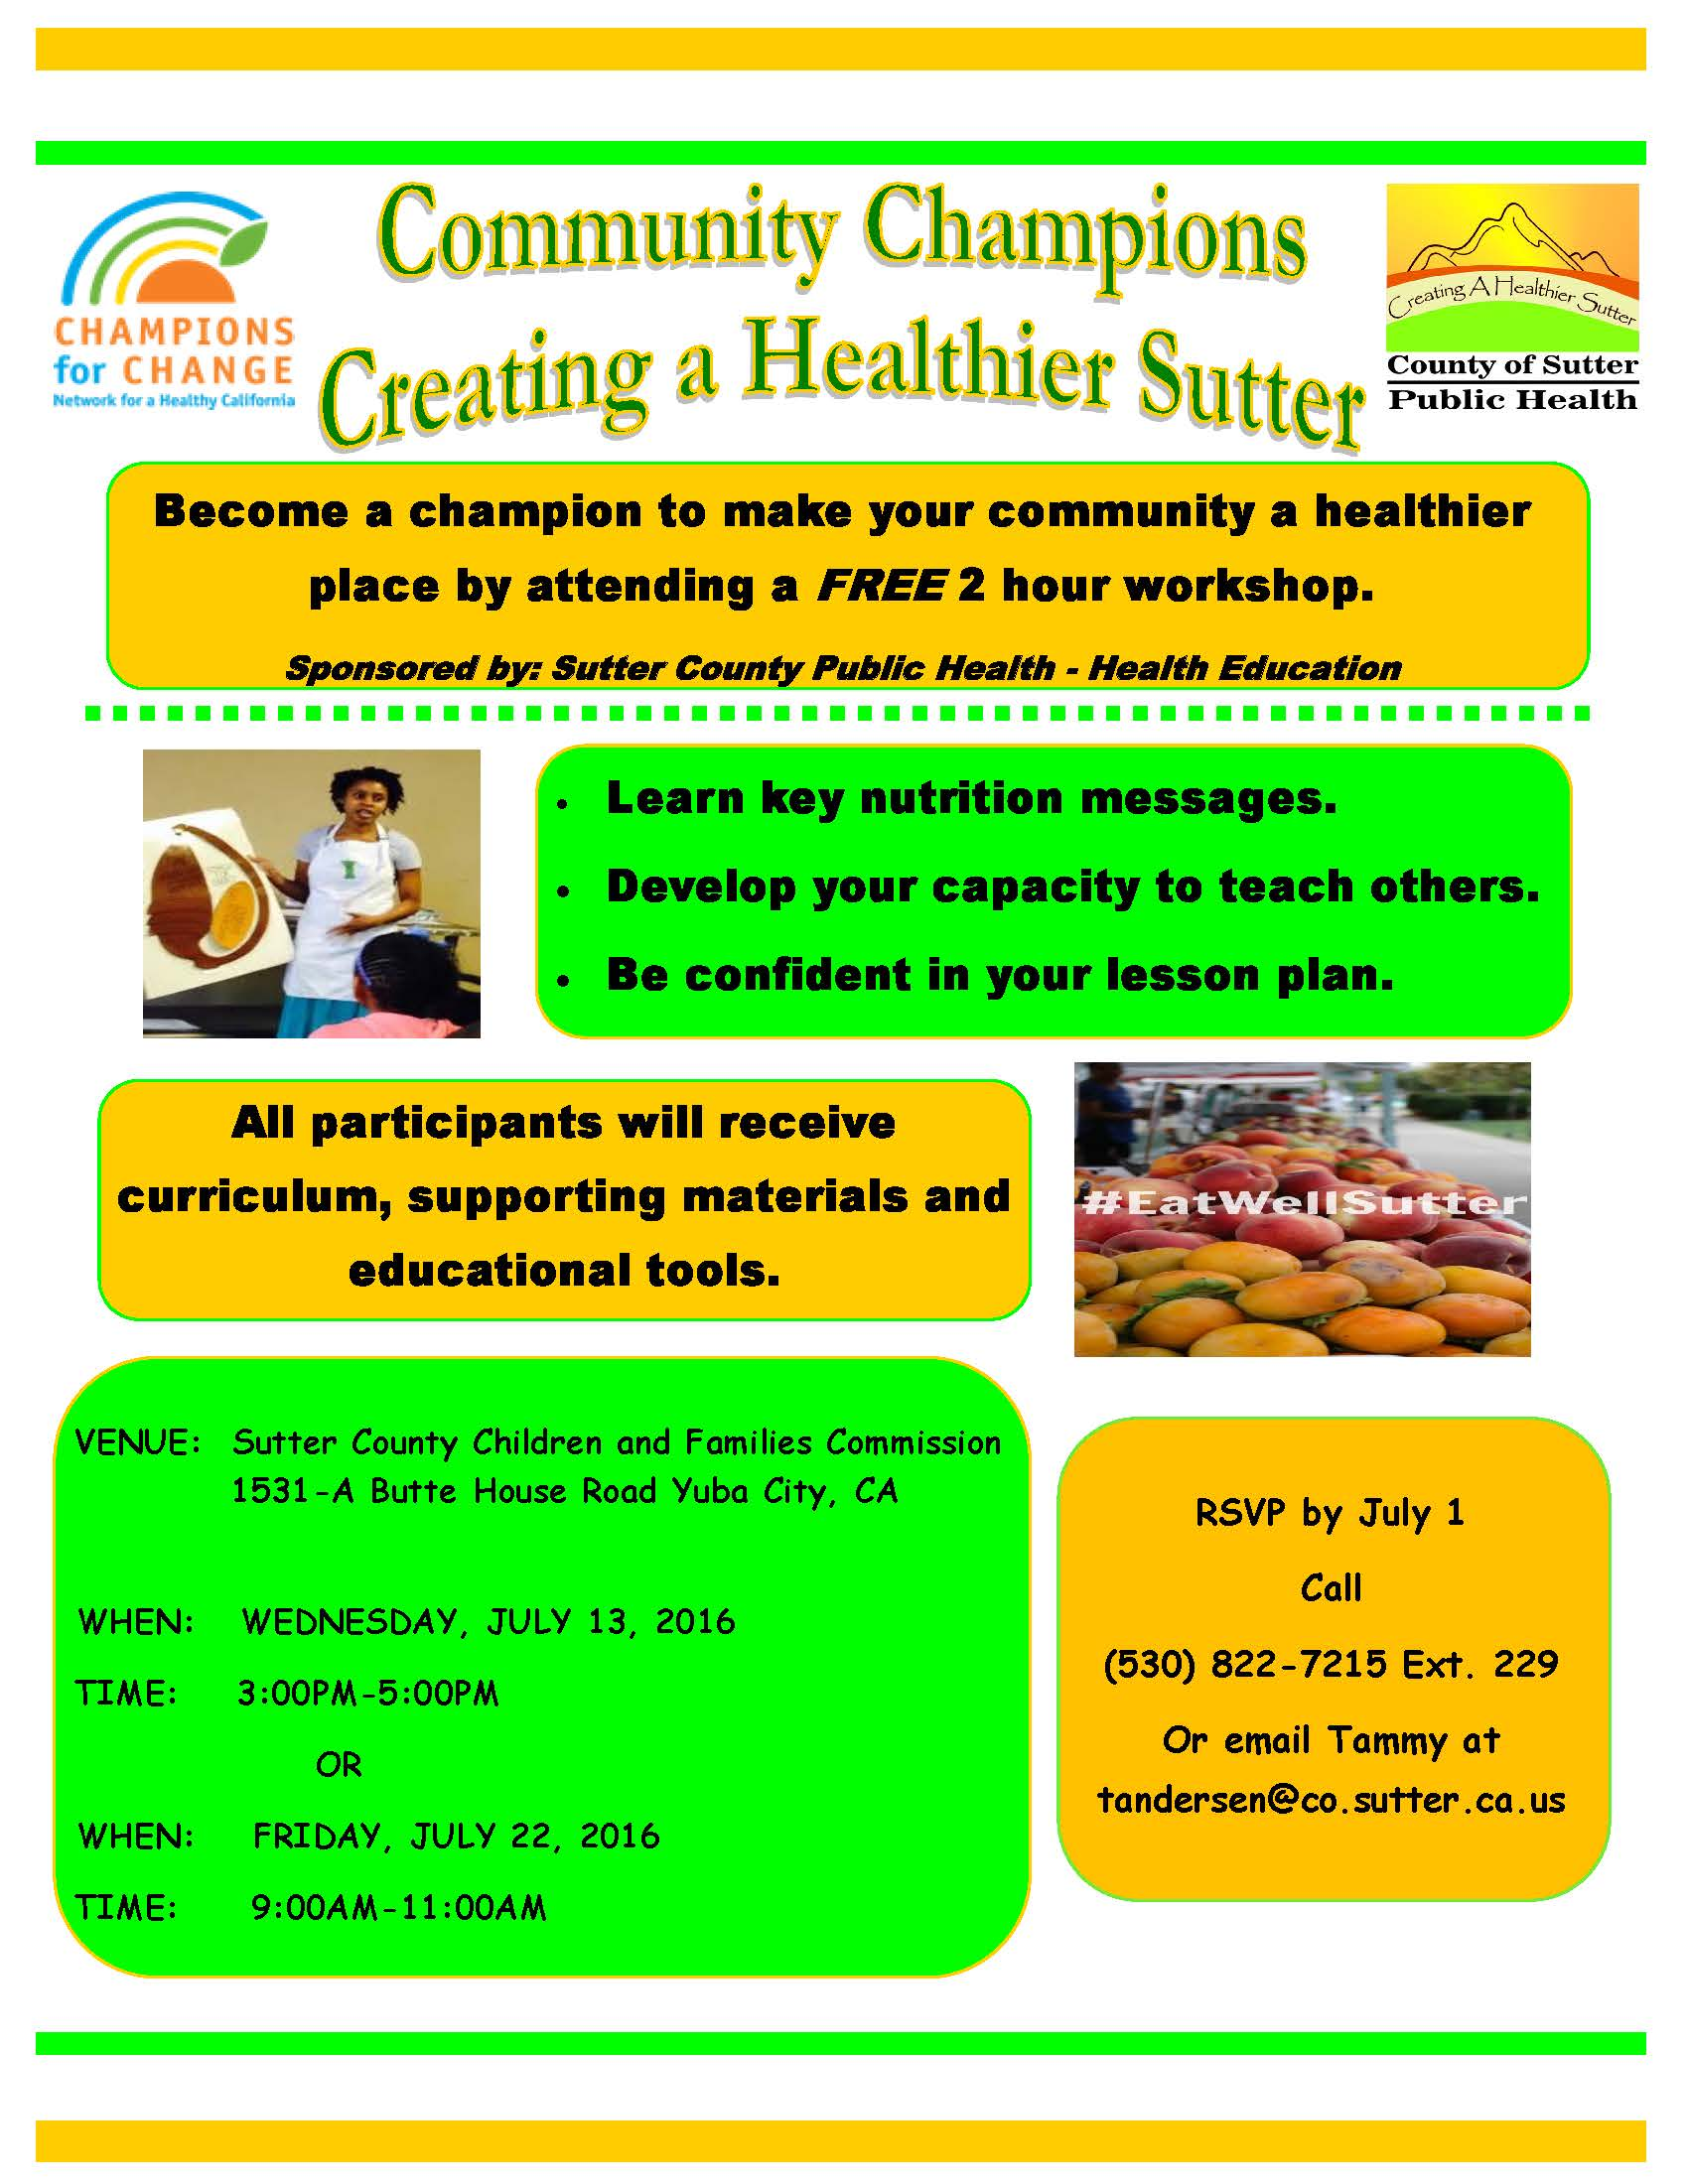 Community Champions Creating a Healthier Sutter Flyer